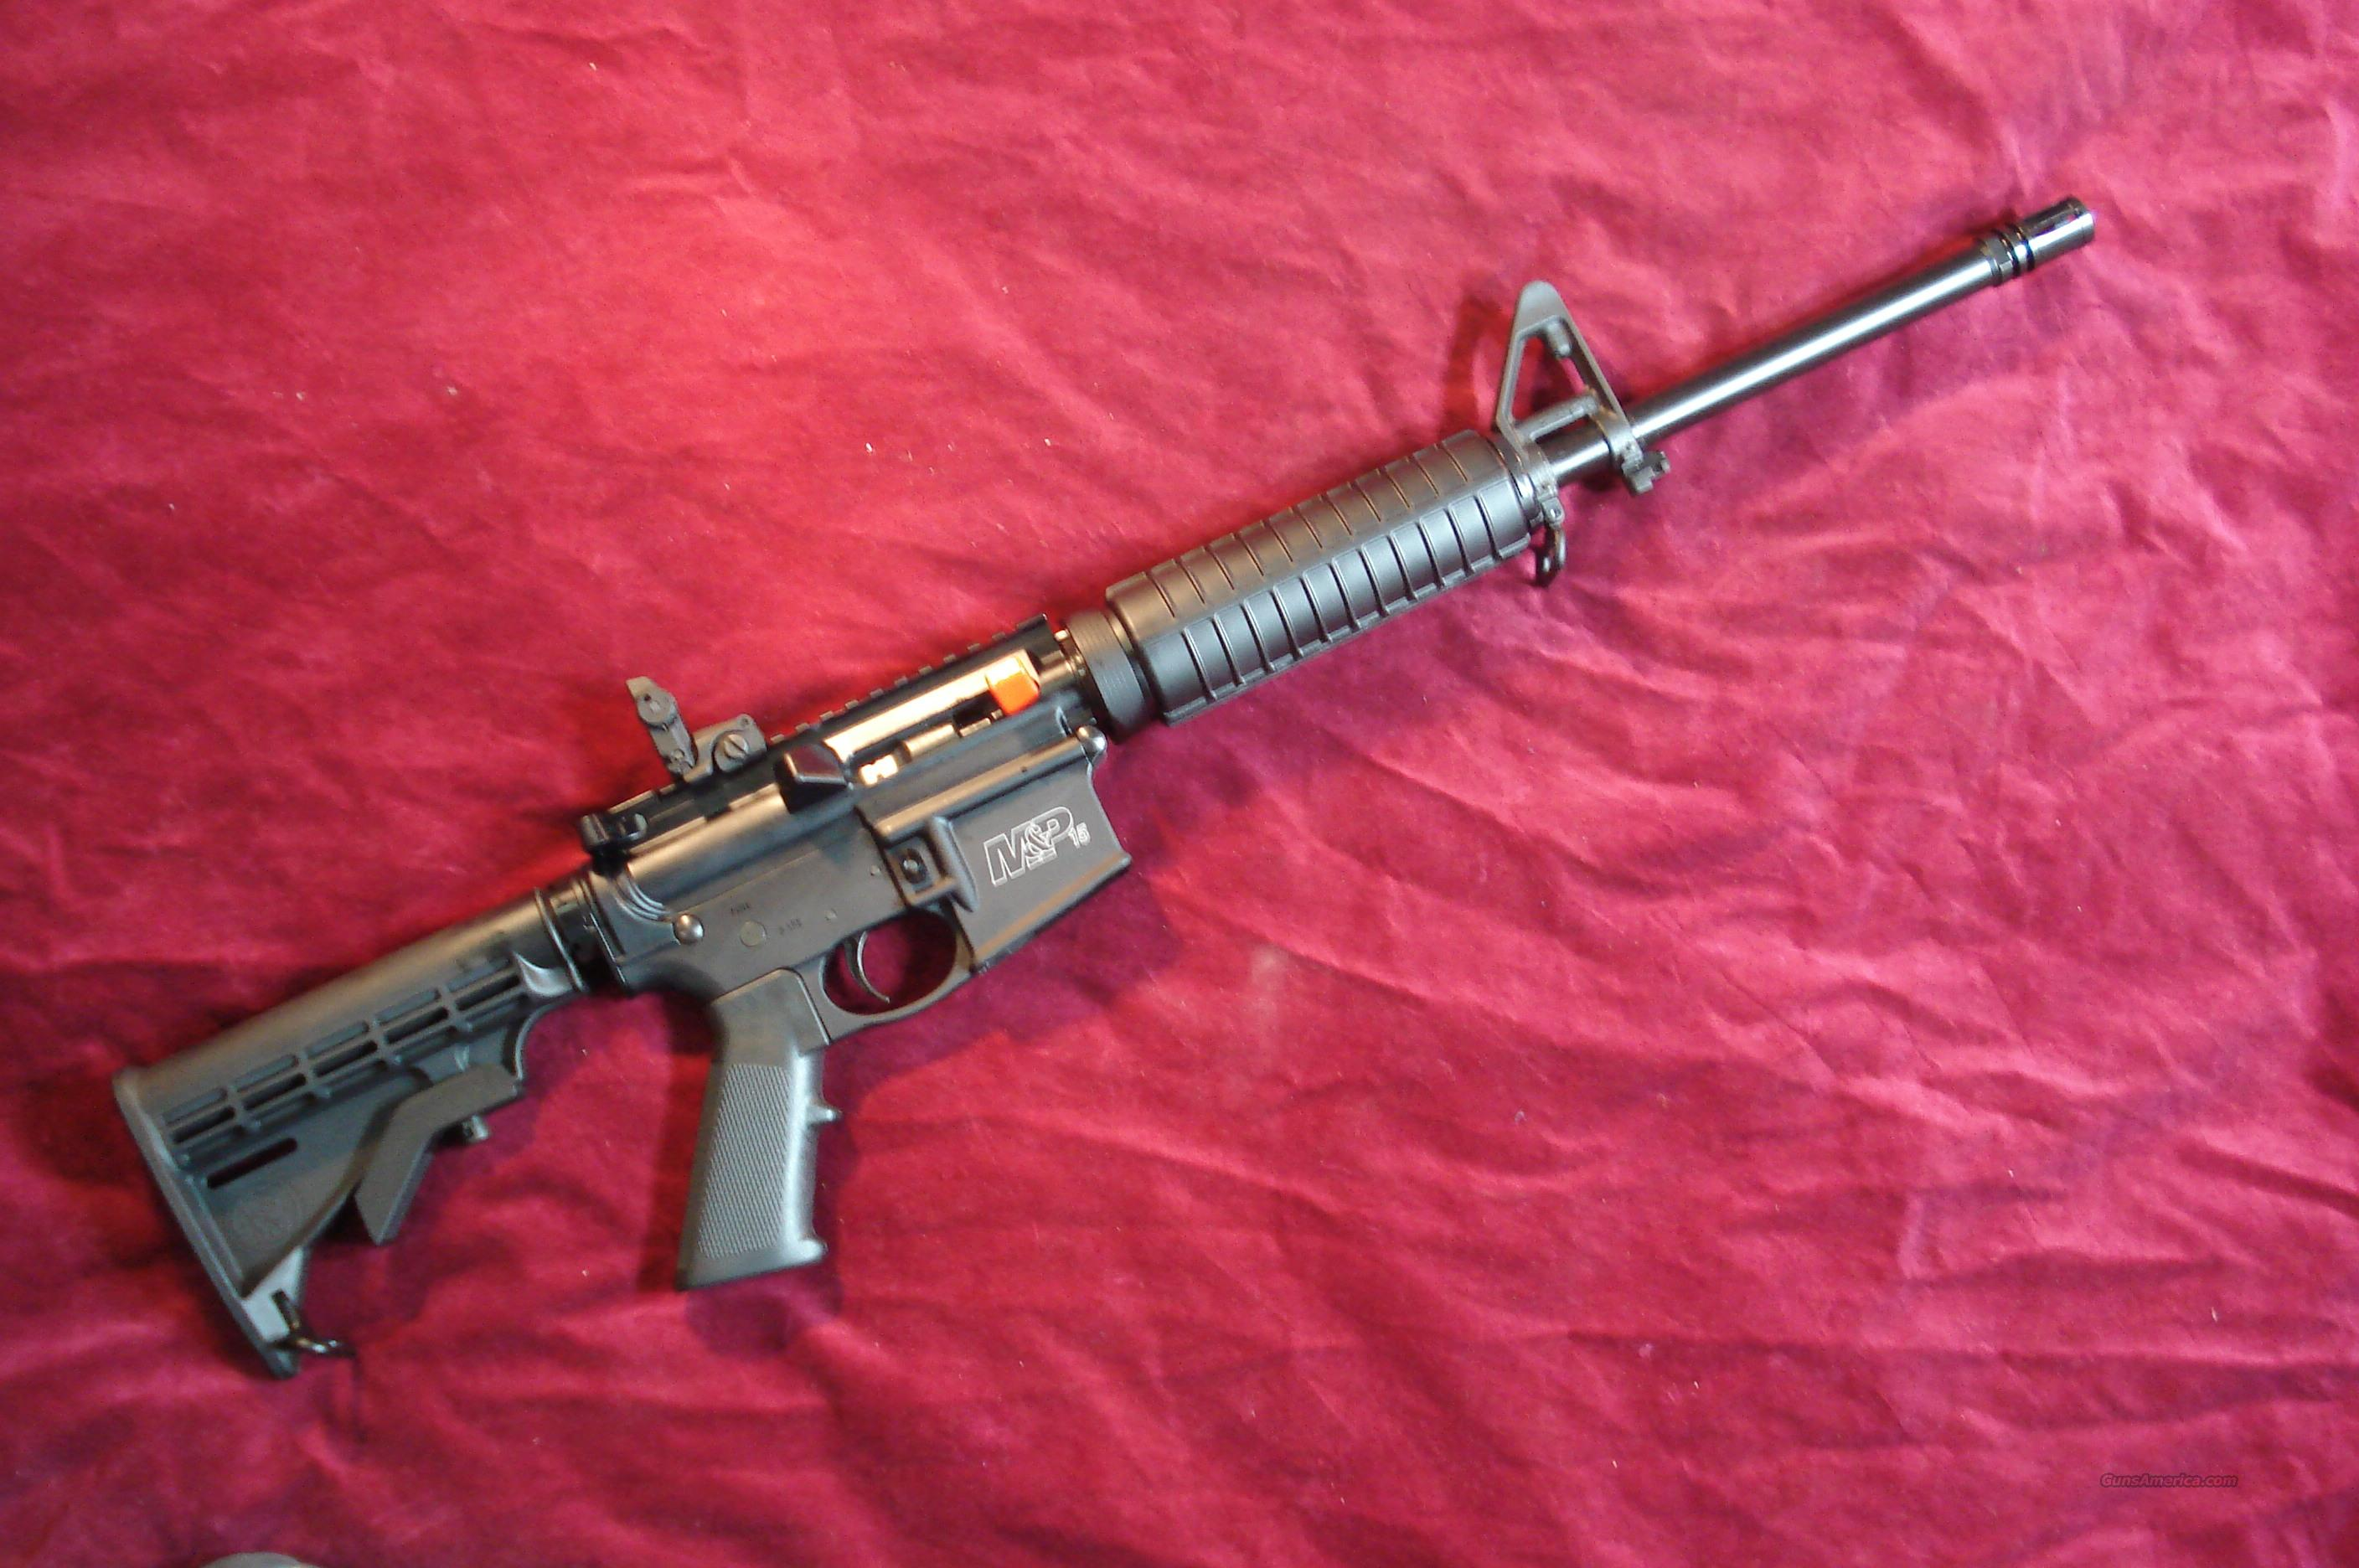 SMITH AND WESSON M&P15 SPORT NEW   Guns > Rifles > Smith & Wesson Rifles > M&P